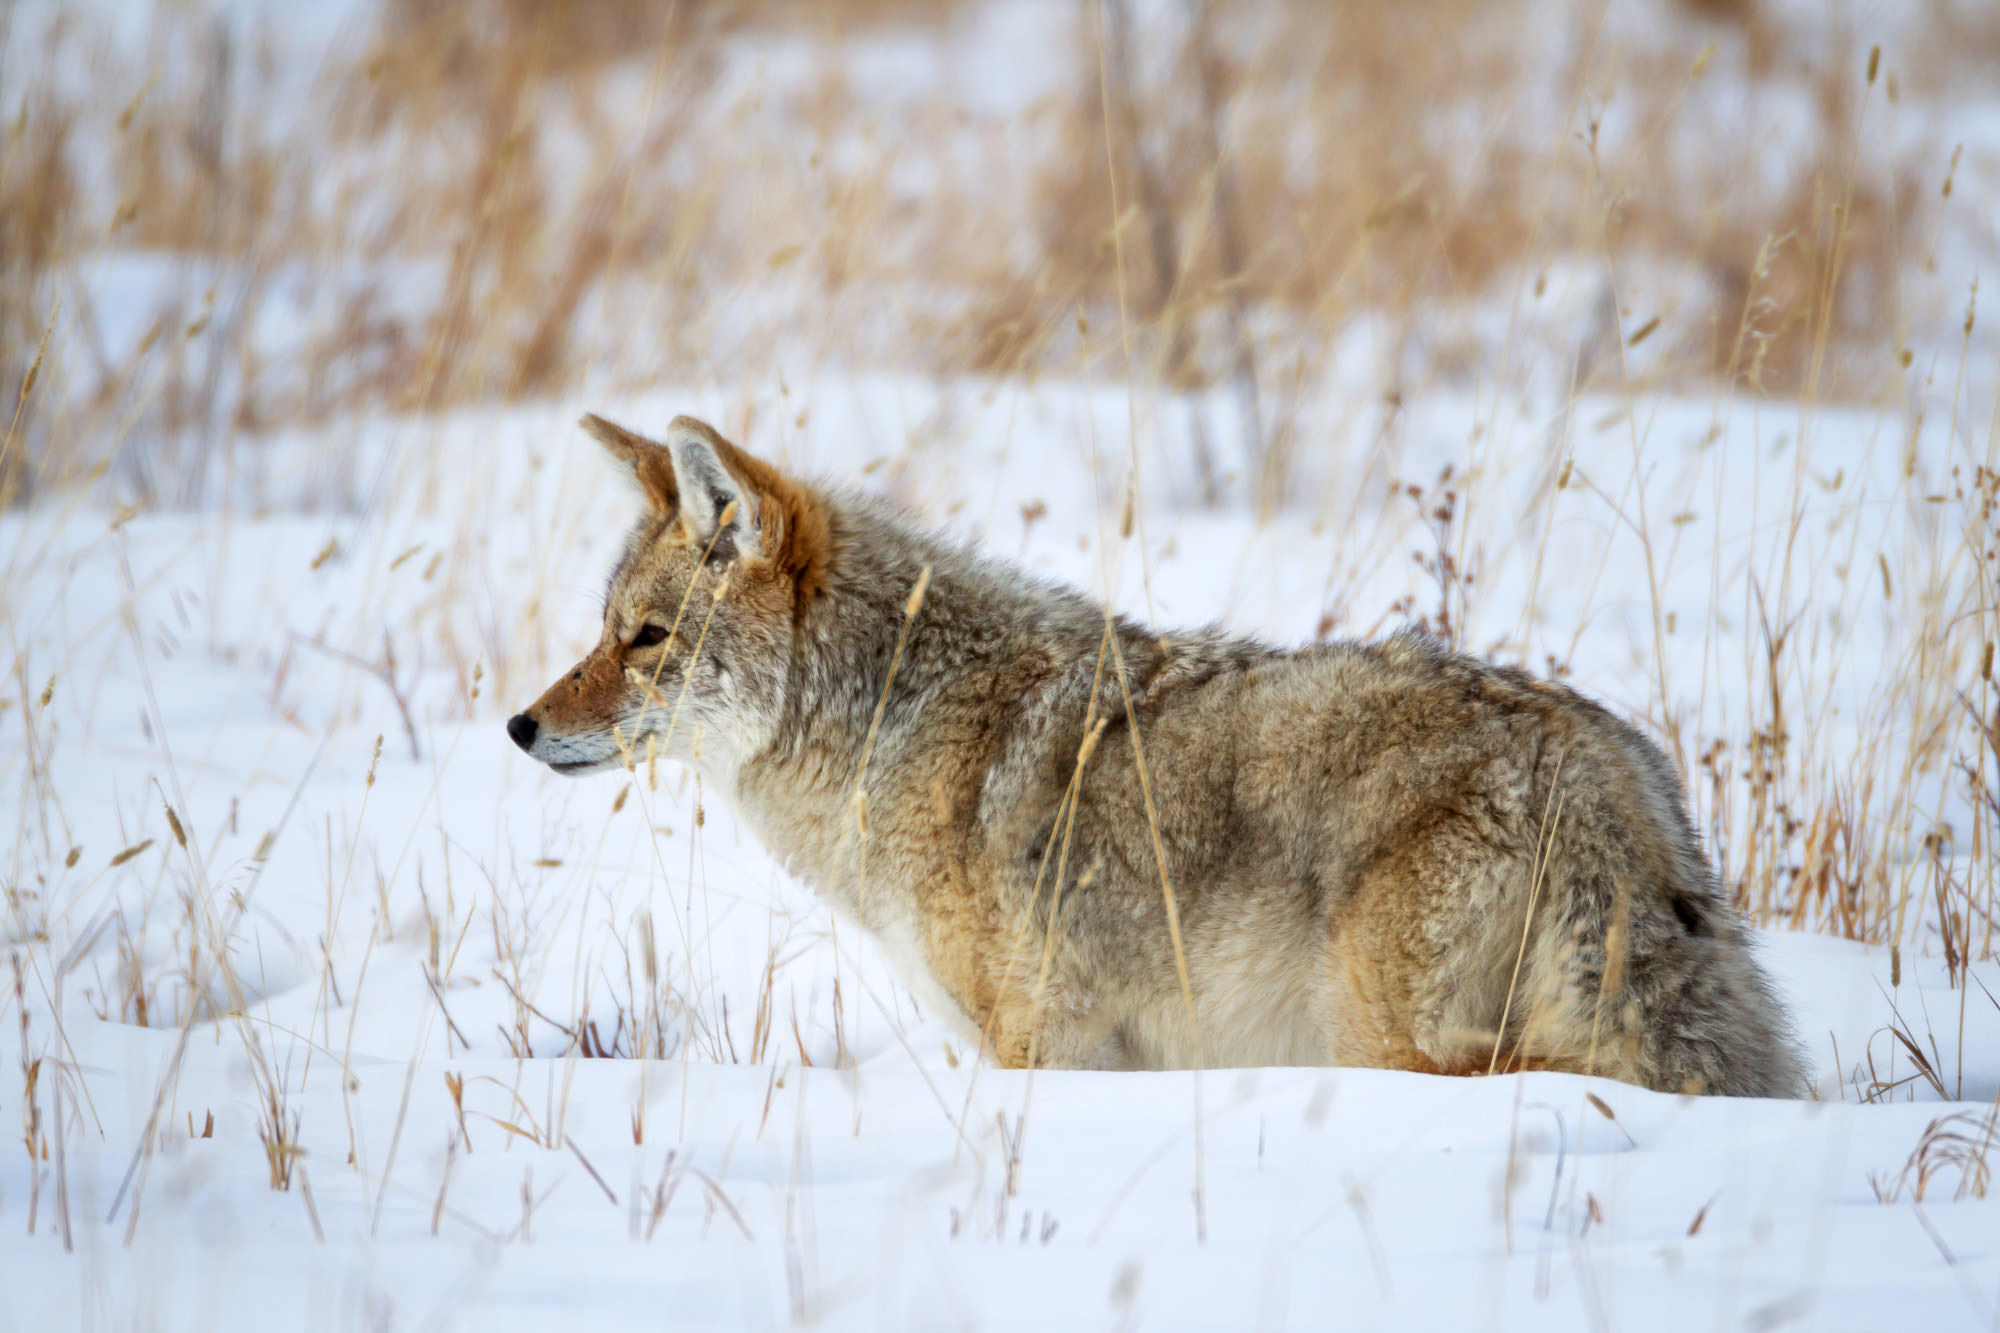 Coyote, Winter, Yellowstone, Wyoming, National Park, limited edition, photograph, fine art, wildlife, photo